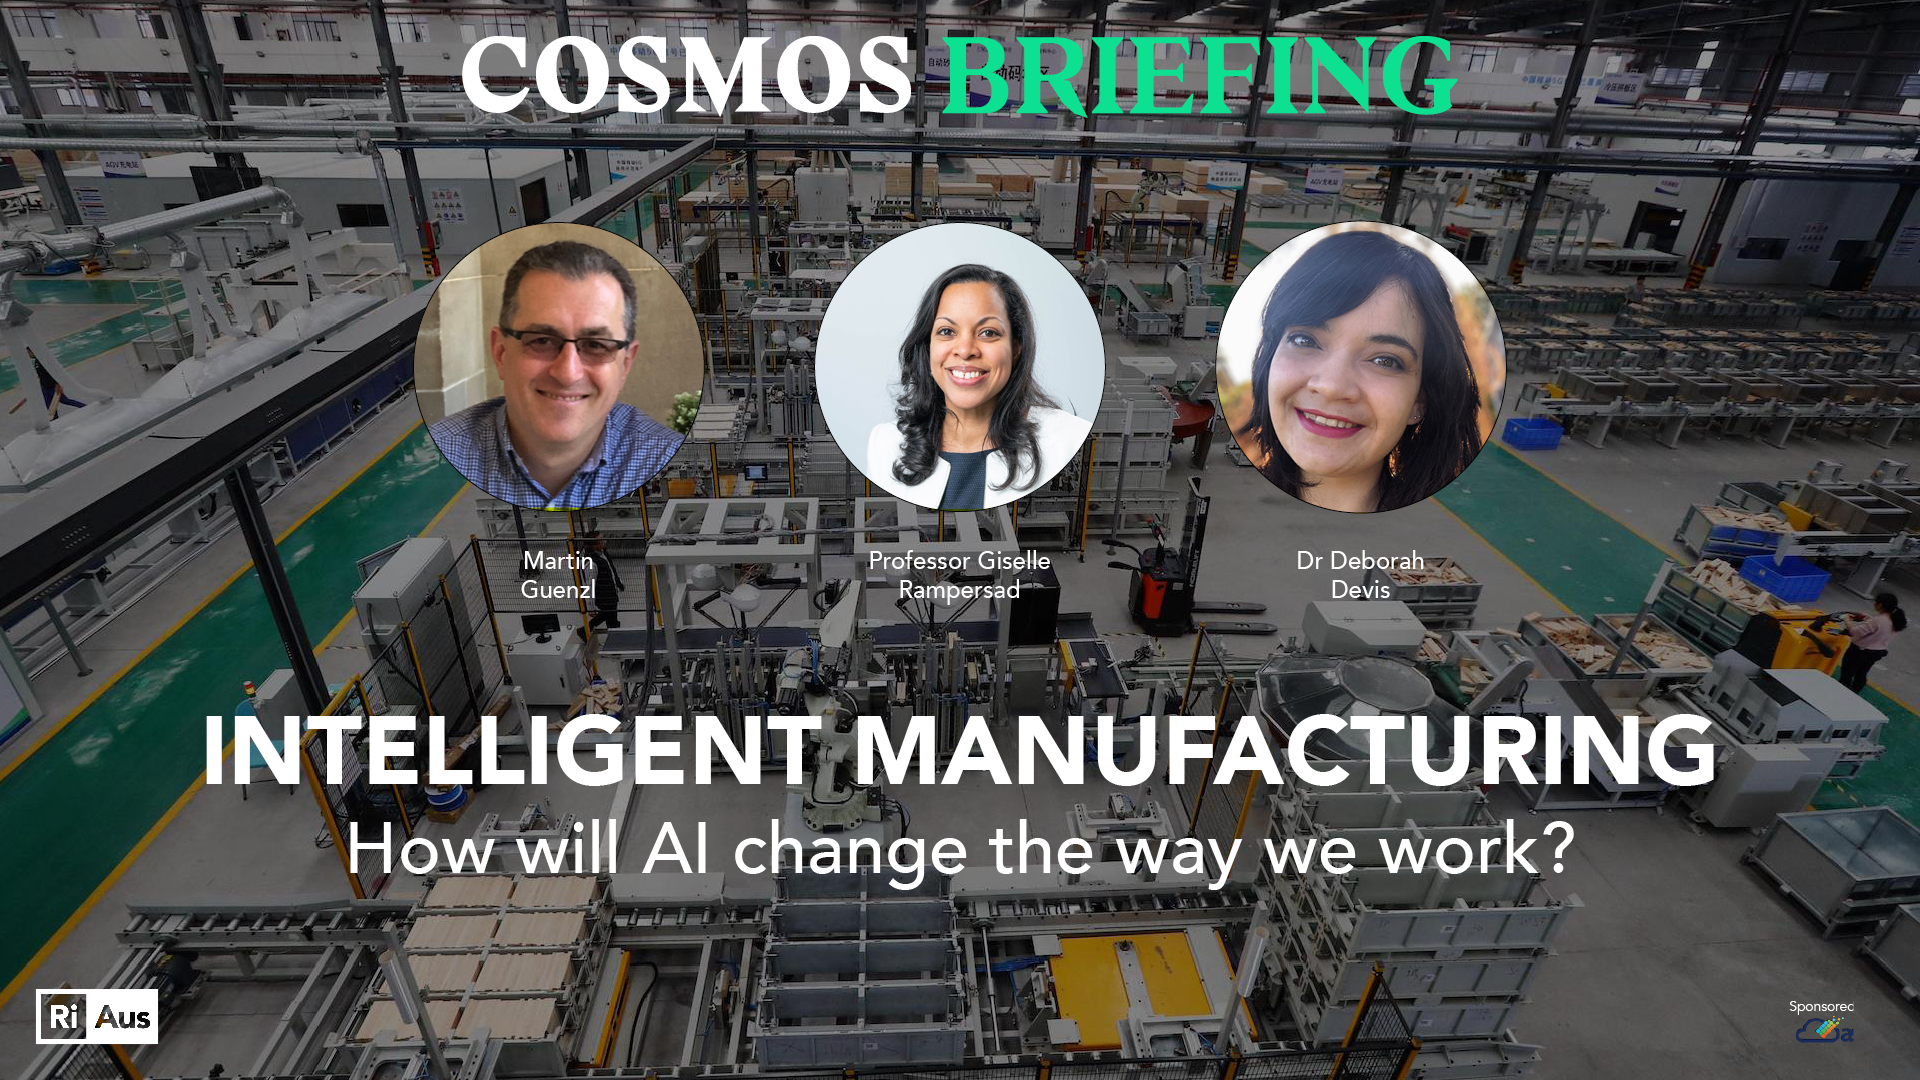 Cosmos Briefing: Intelligent Manufacturing